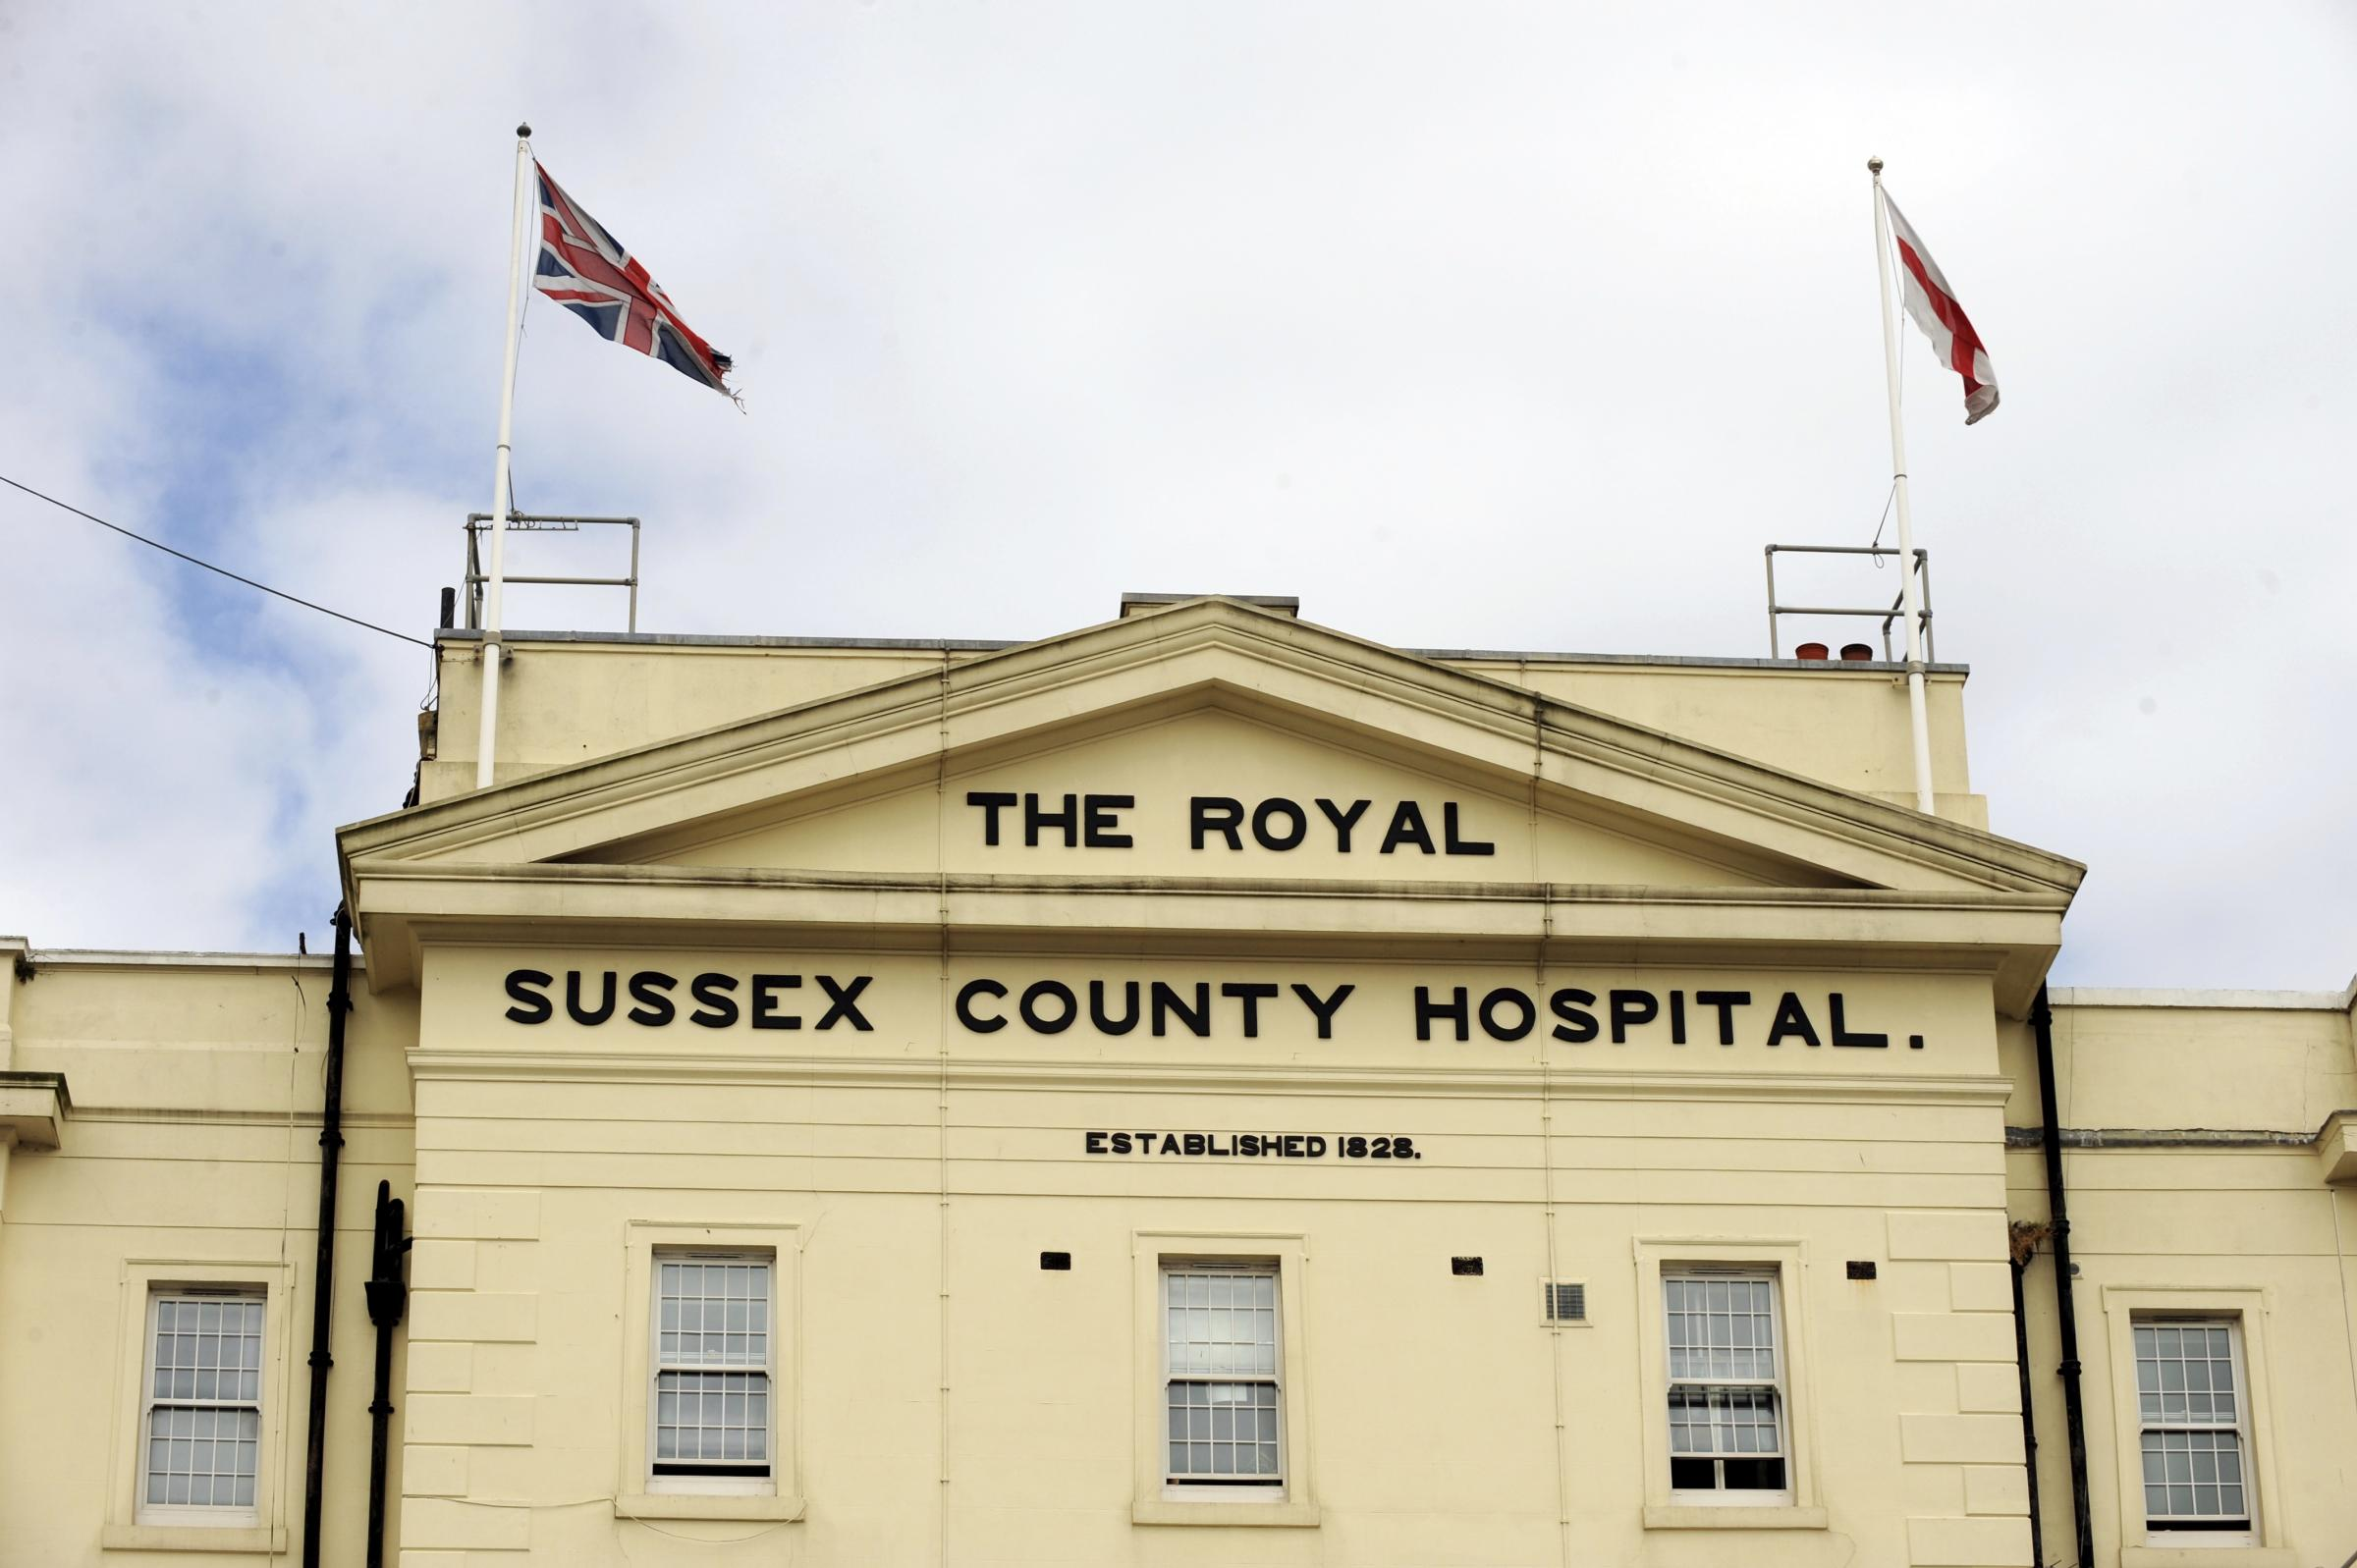 Transferring patients at Royal Sussex County Hospital proves problem in bad weather